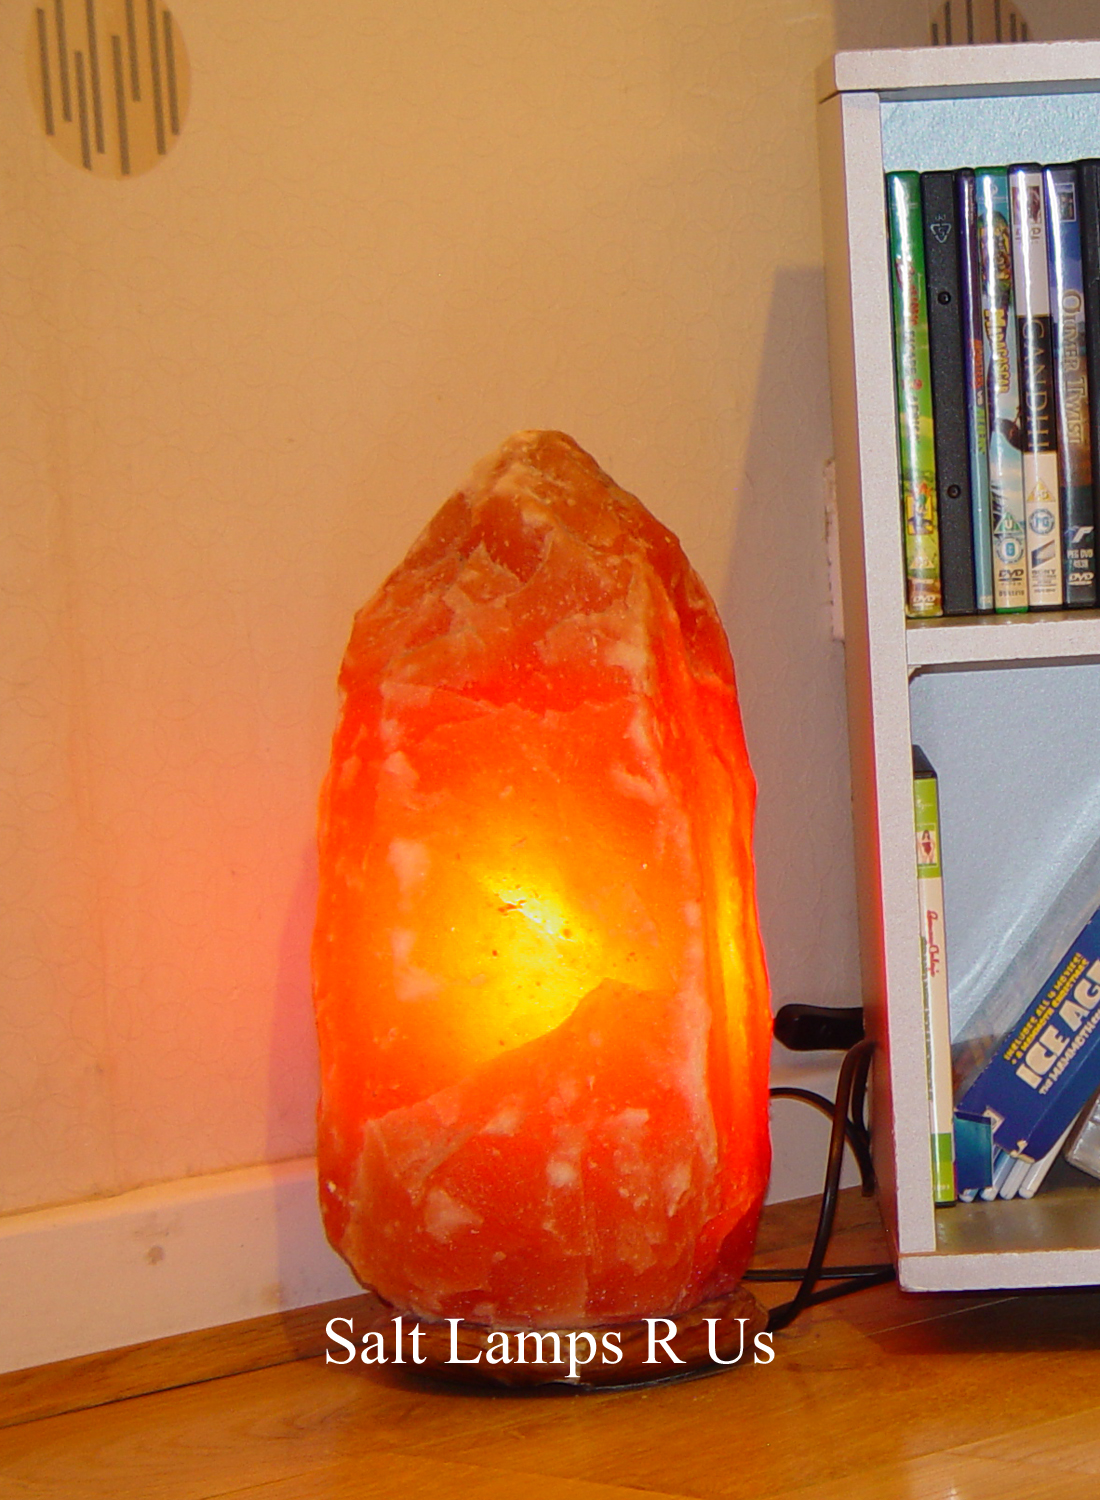 Jumbo Natural Salt Crystal Lamp Attached Wood Base 8-10kg LG694 Saltlamps-R-Us Co.Uk